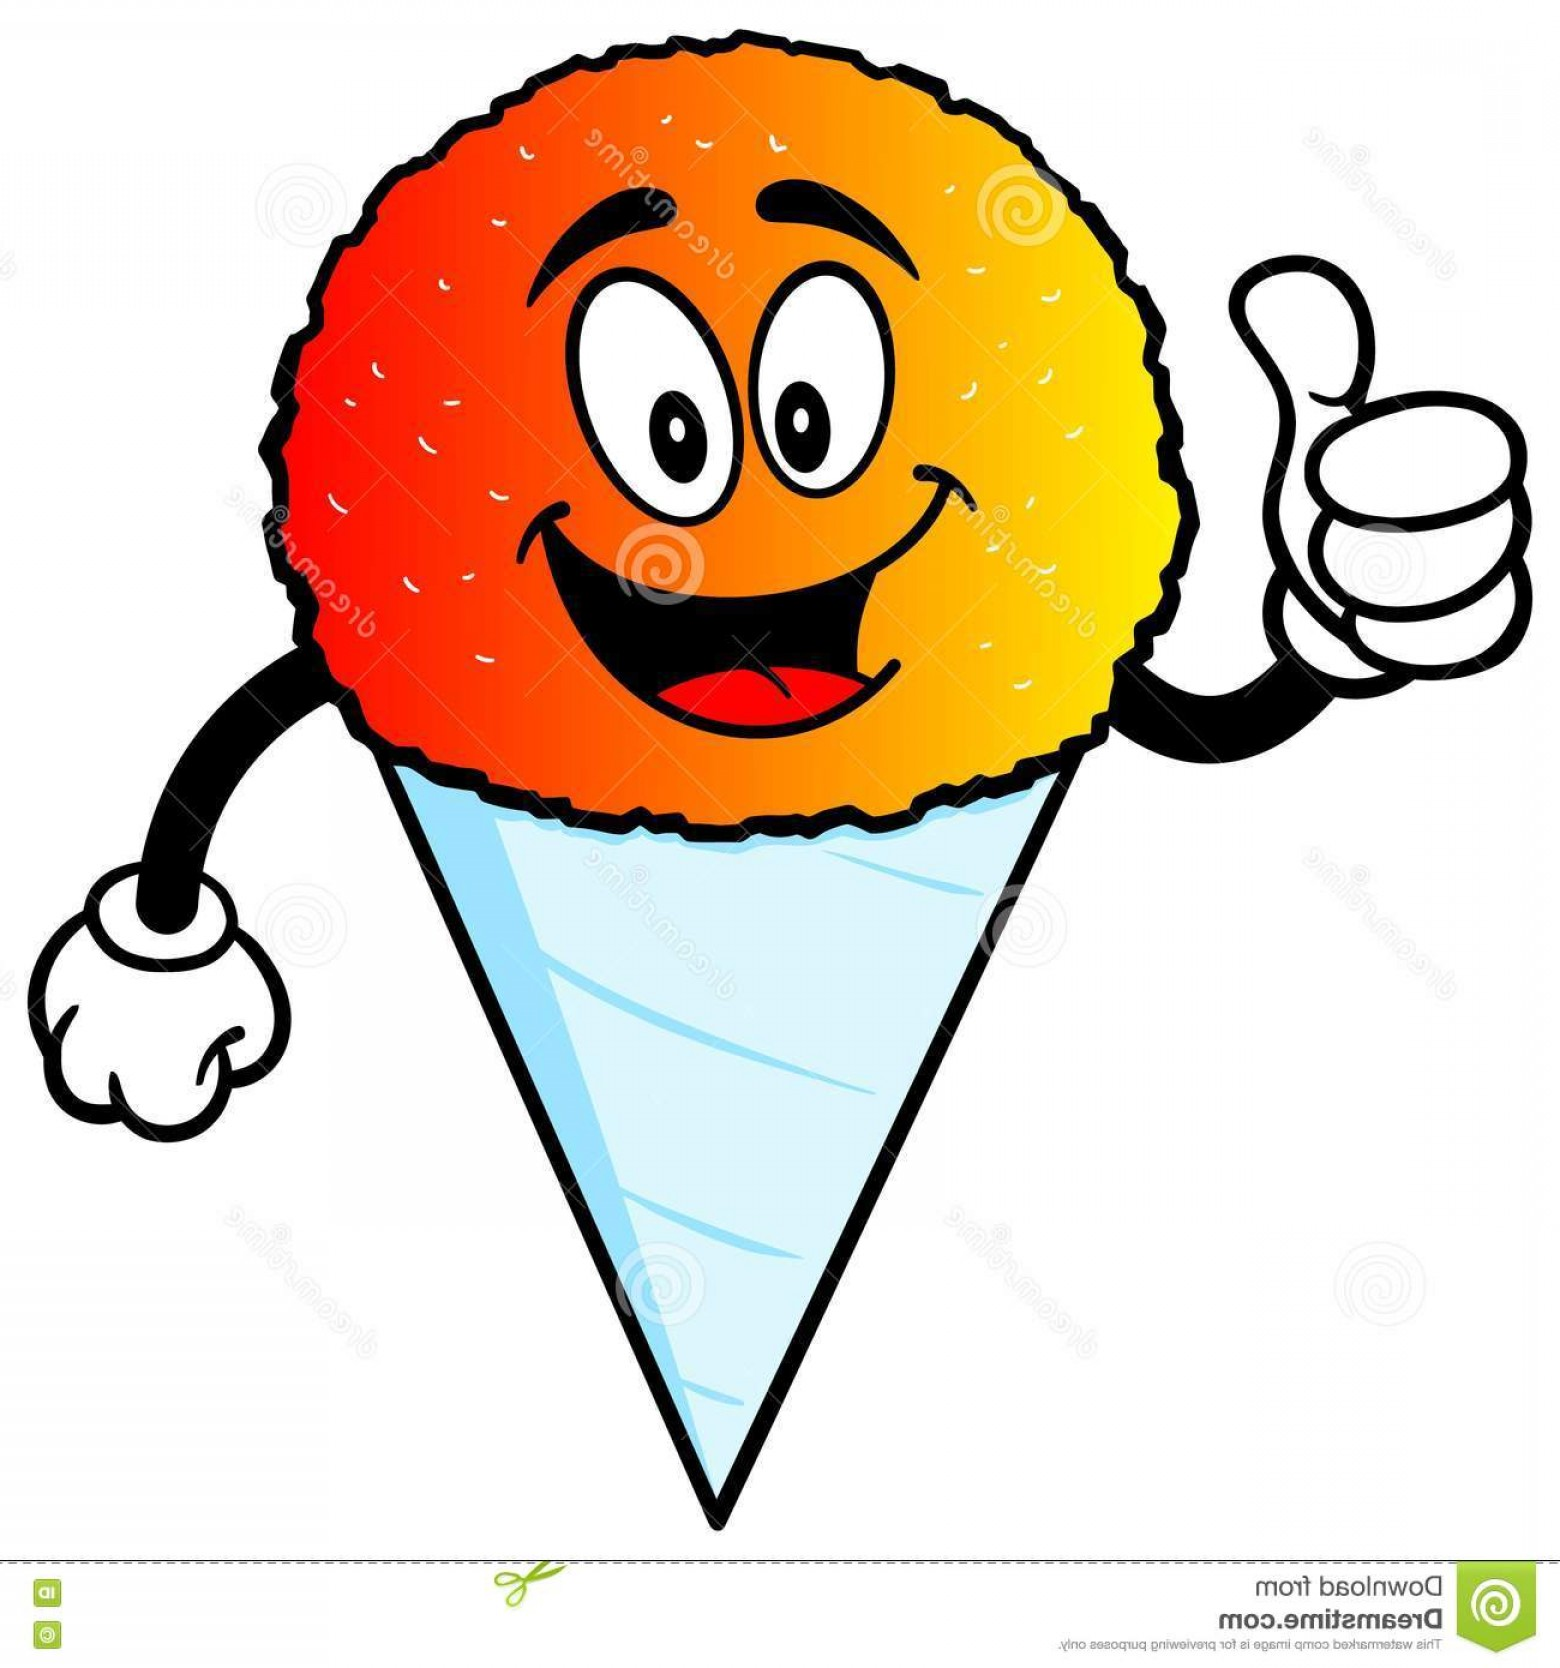 Snow Cone Outline Vector: Stock Illustration Snow Cone Thumbs Up Vector Illustration Image